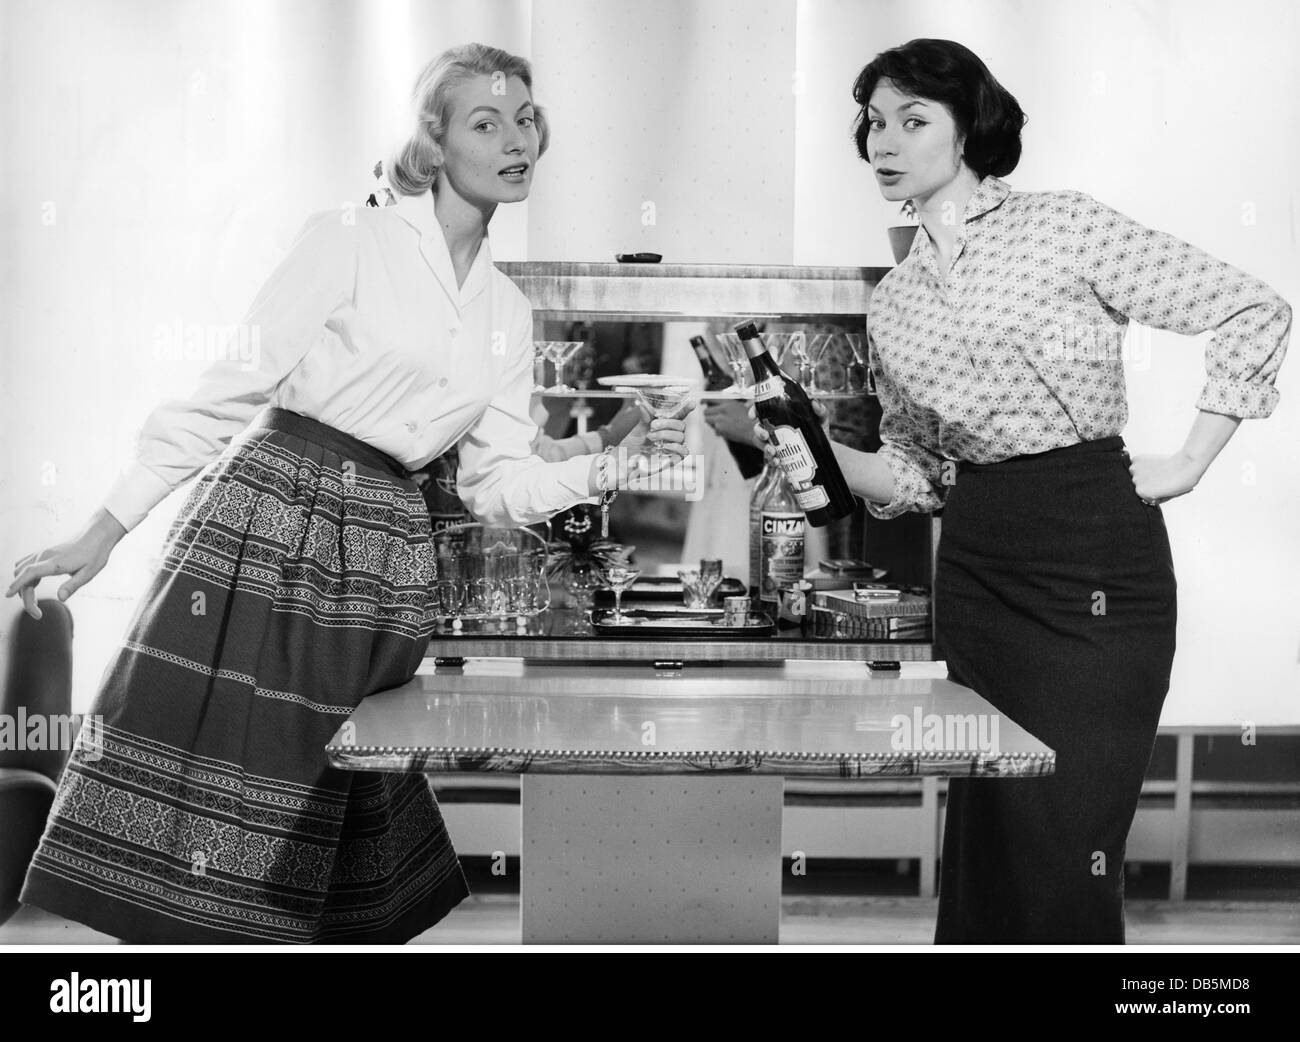 interieur, minibar, two women presenting open minibar, circa 1958, Additional-Rights-Clearences-NA - Stock Image